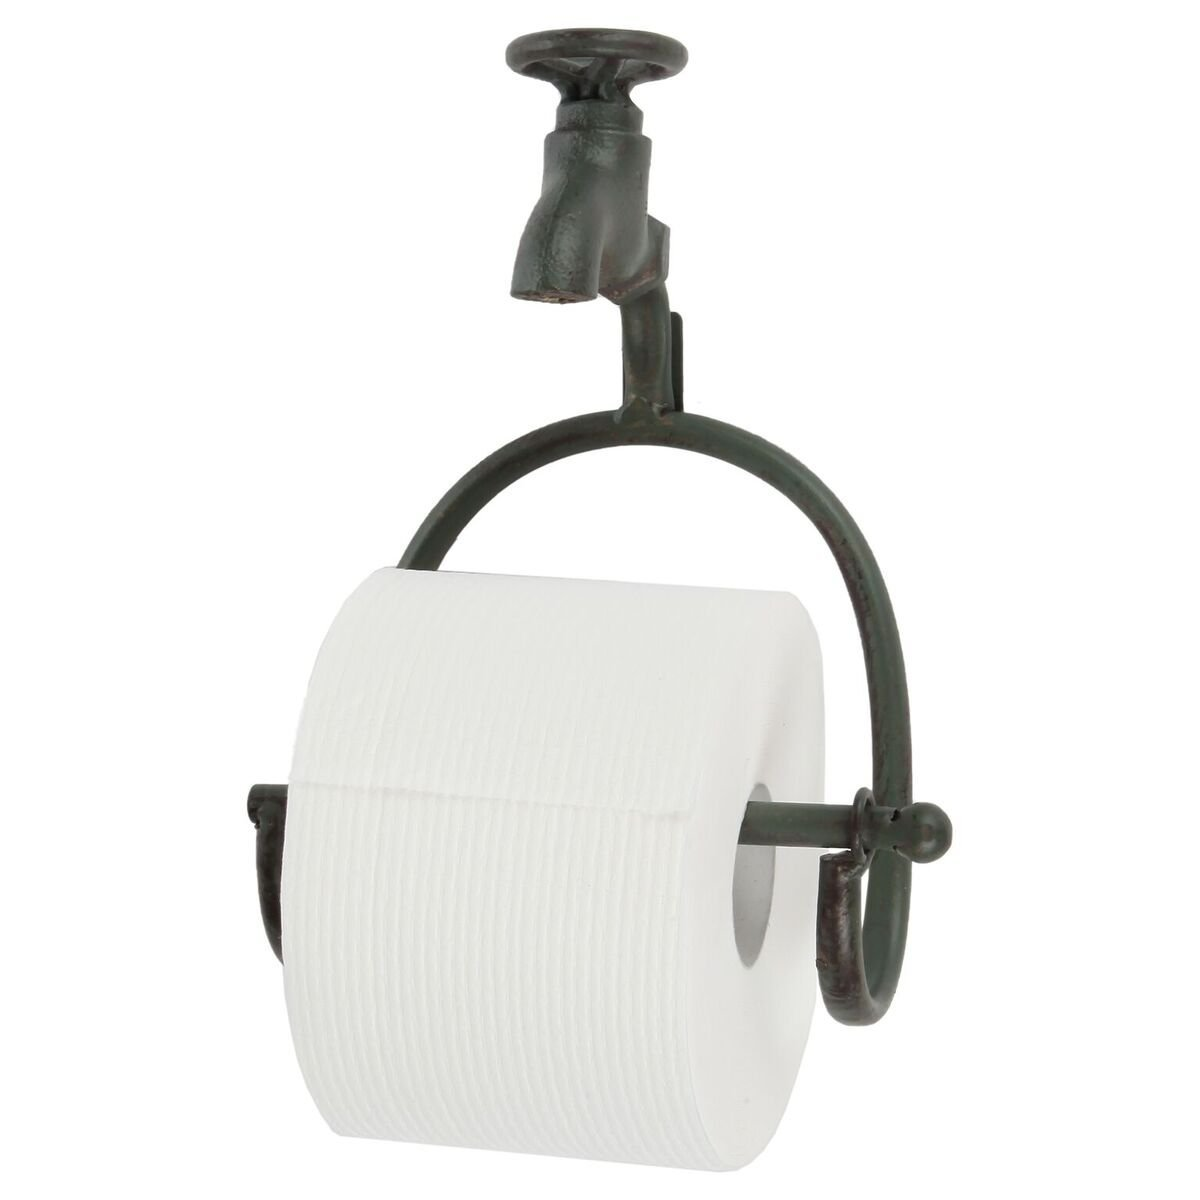 Lily's Home Vintage Rustic Wall Mount Toilet Paper Roll Holder, Country Design Crafted to Look Like Spigot Faucet and is Ideal for Any Whimsical Décor Style, Green Patina